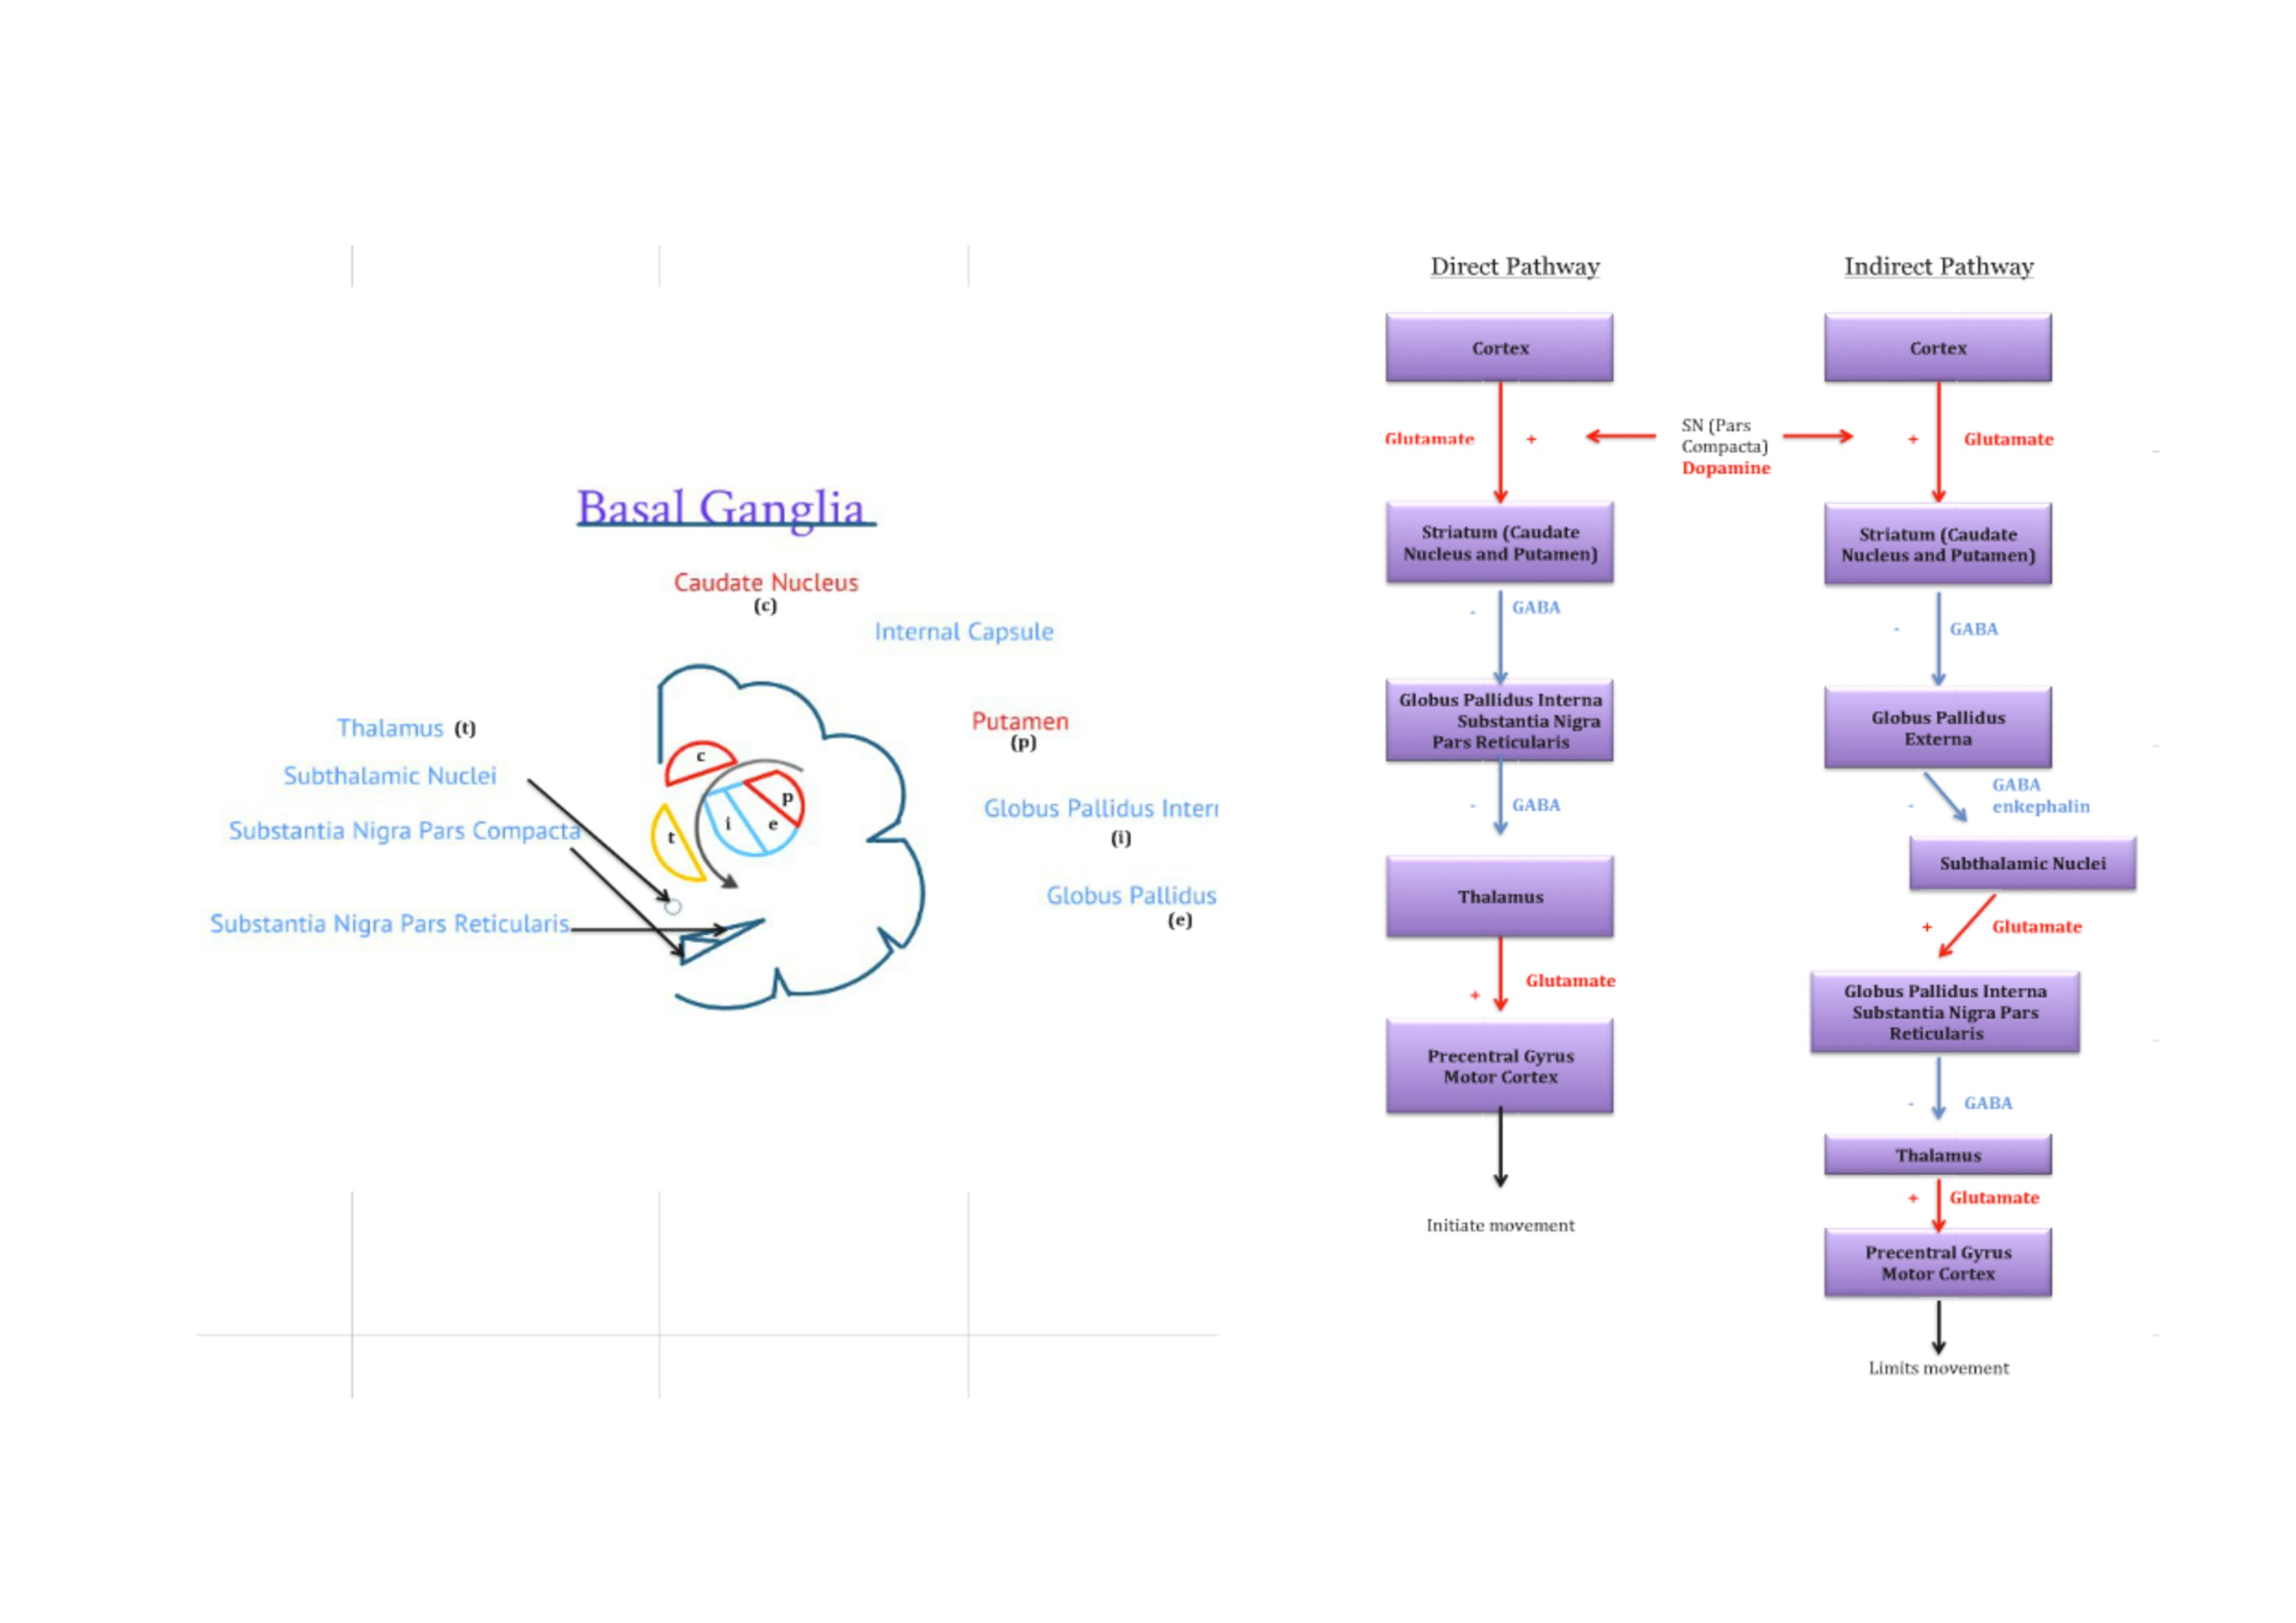 Basal Ganglia Structure and Pathways